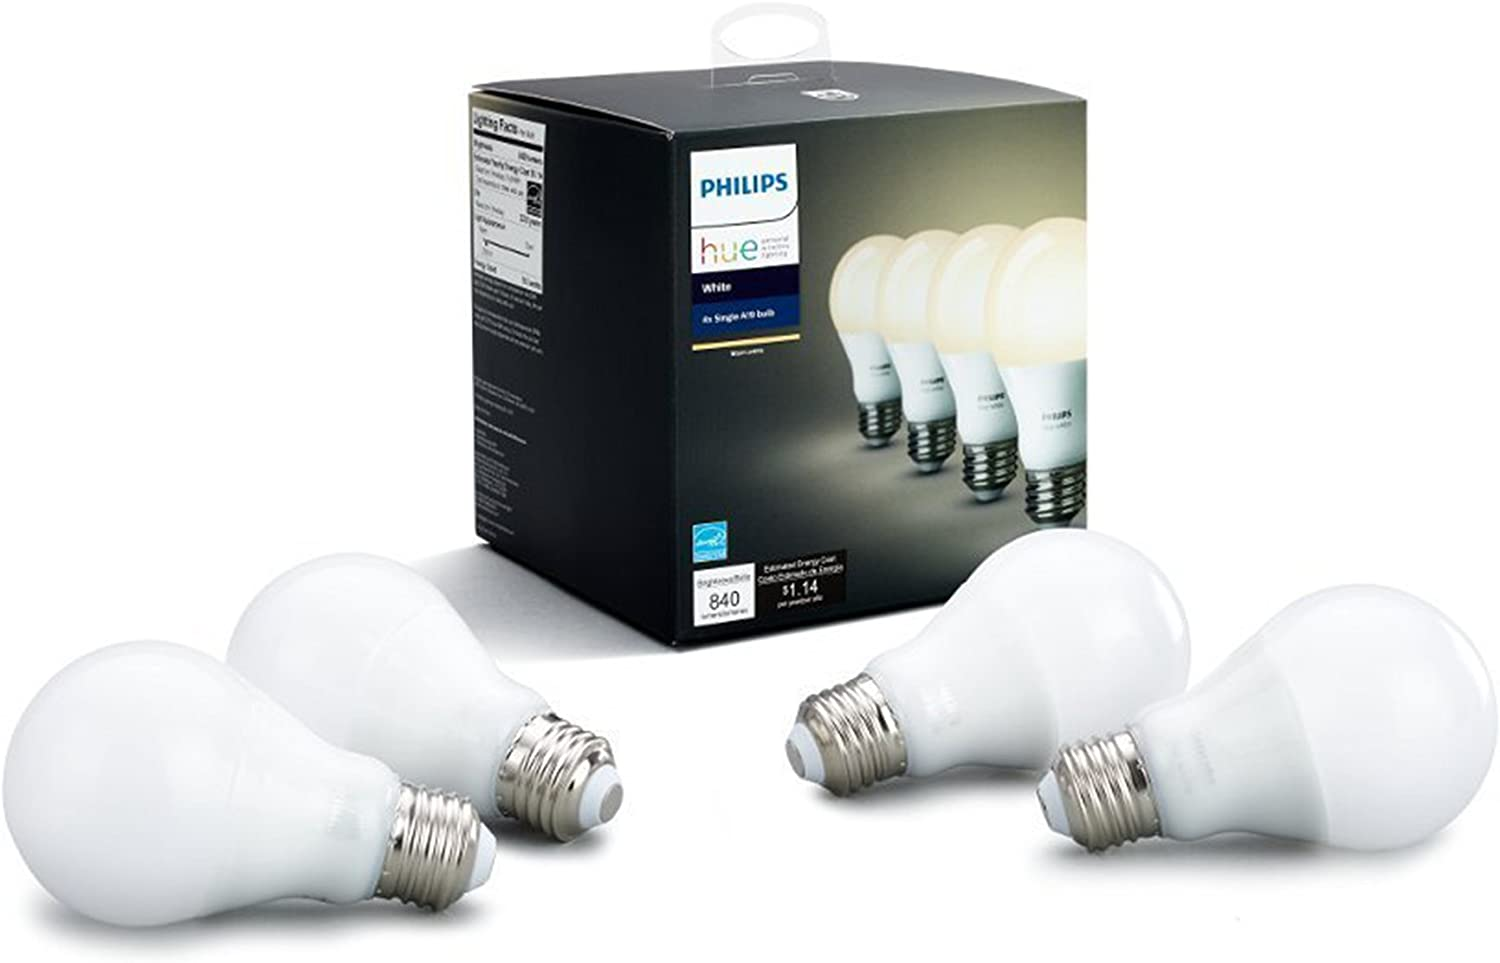 Philips Hue White 4-Pack A19 60W LED Smart Dimmable Compa Bulbs Max 50% OFF Indefinitely